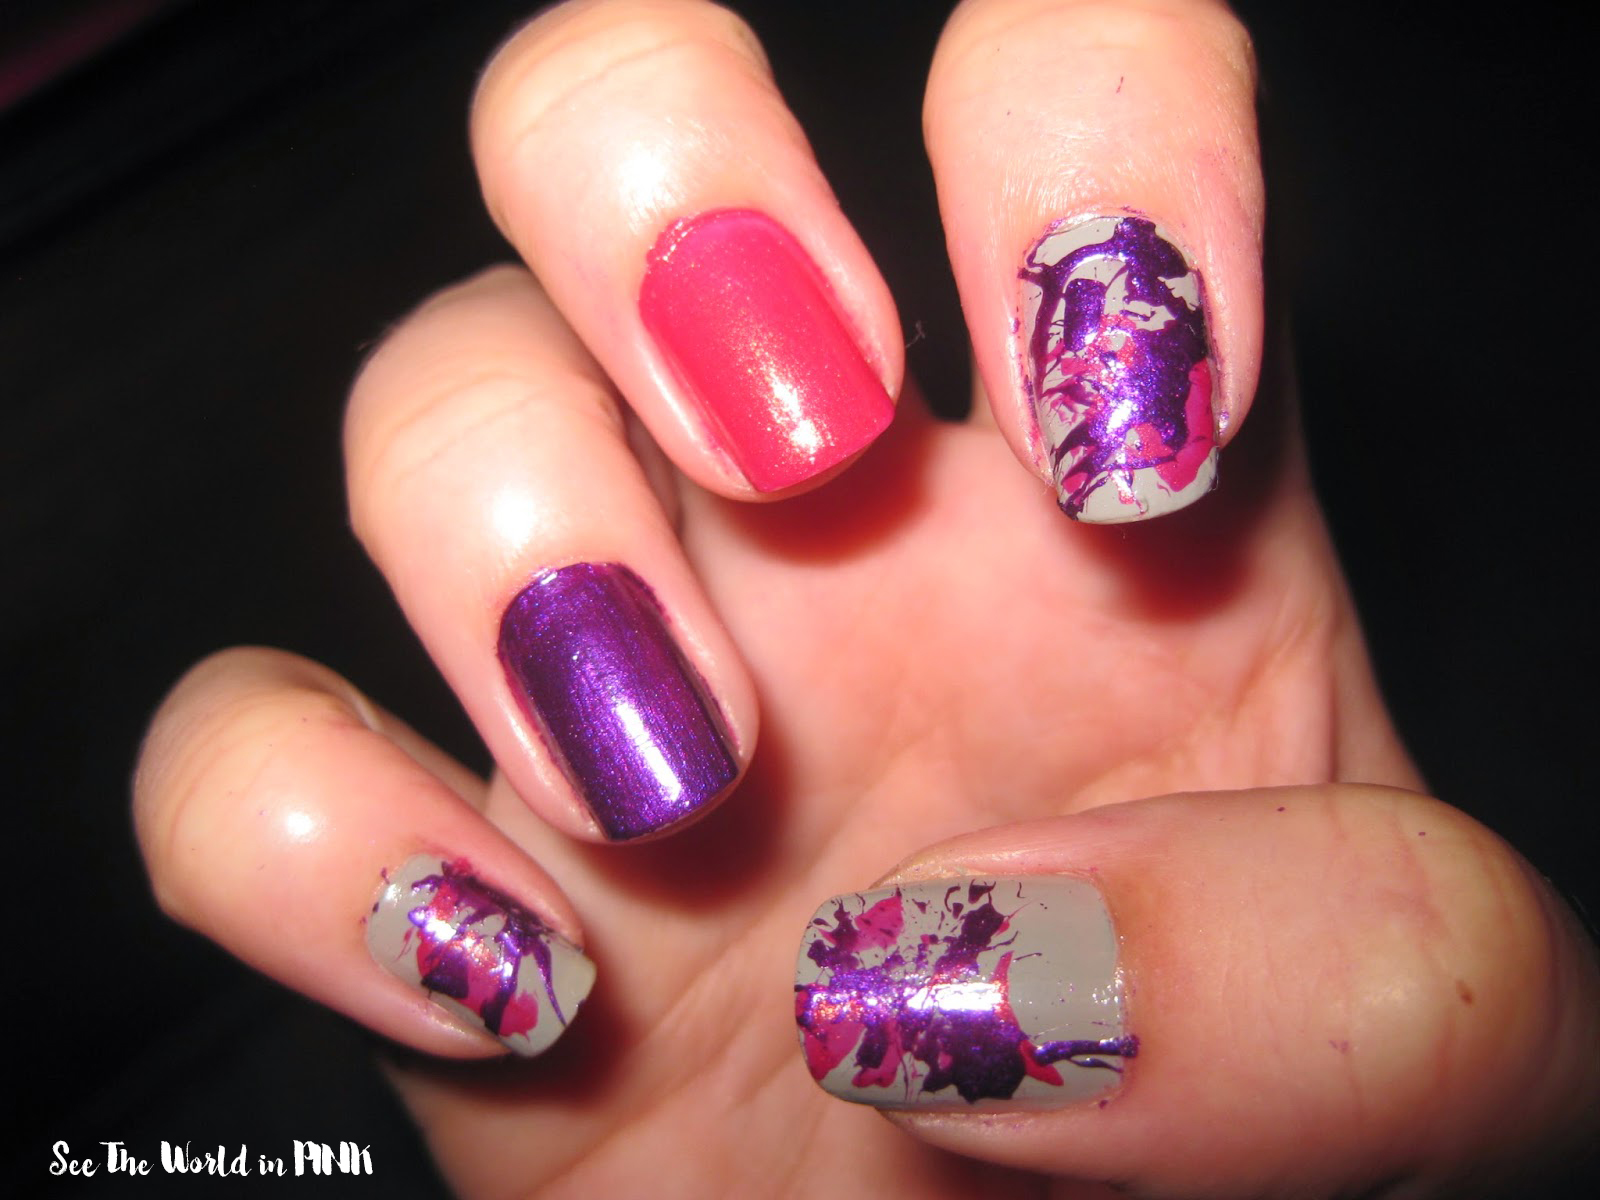 Manicure Monday - Splatter Nails!